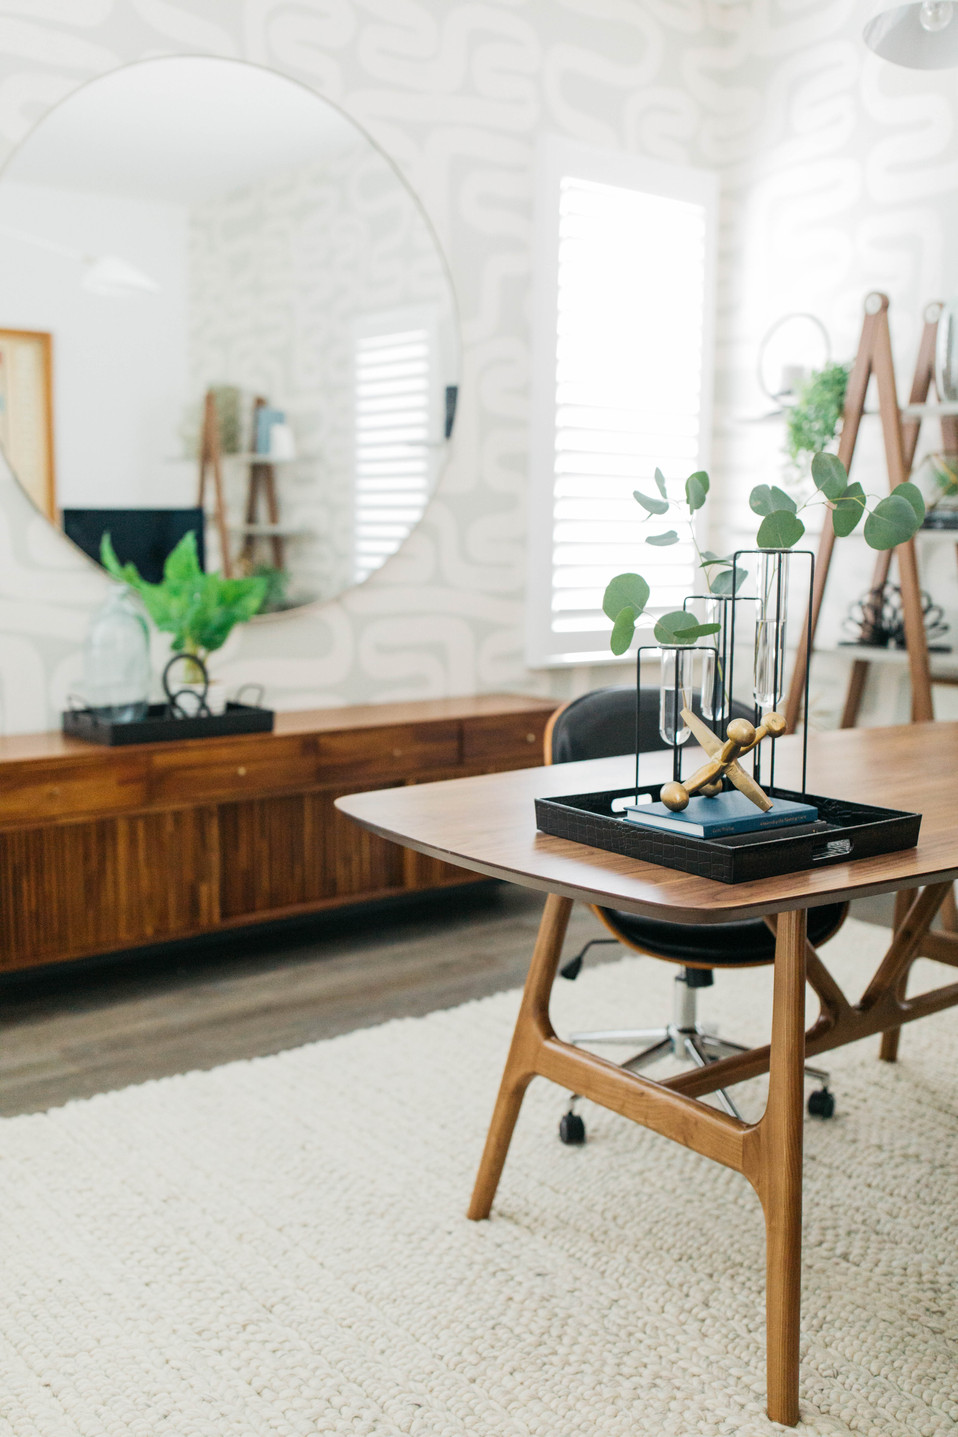 Tolbert's Home Office | Realm Design Co. San Diego, CA | Photographer Halli MaKennah